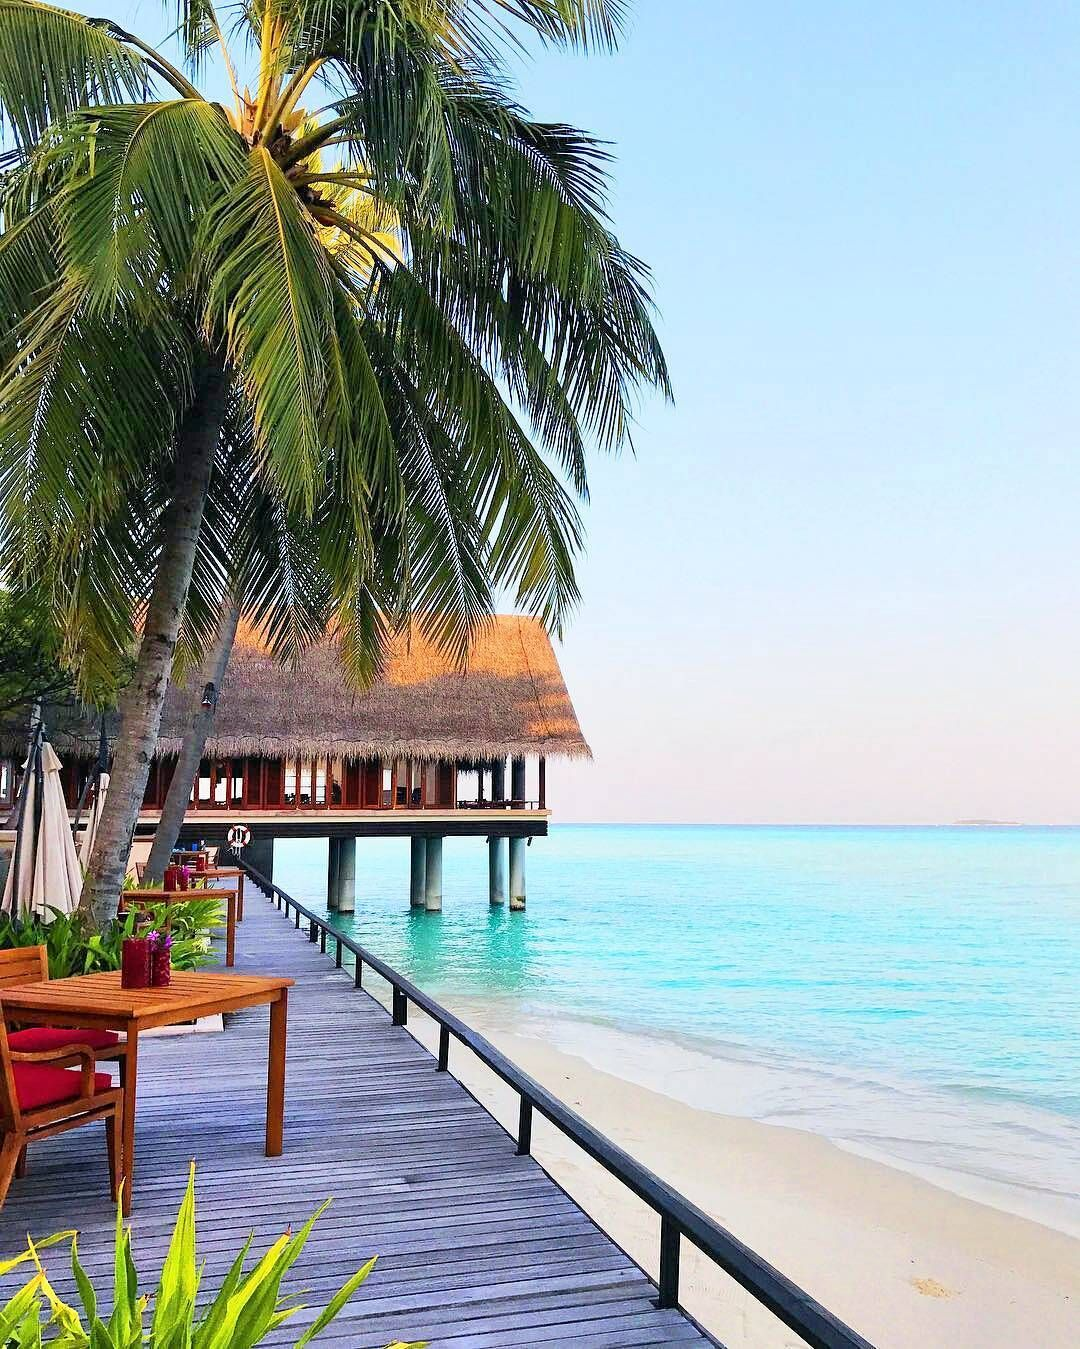 The Maldives Island One & Only Reethirah https//www